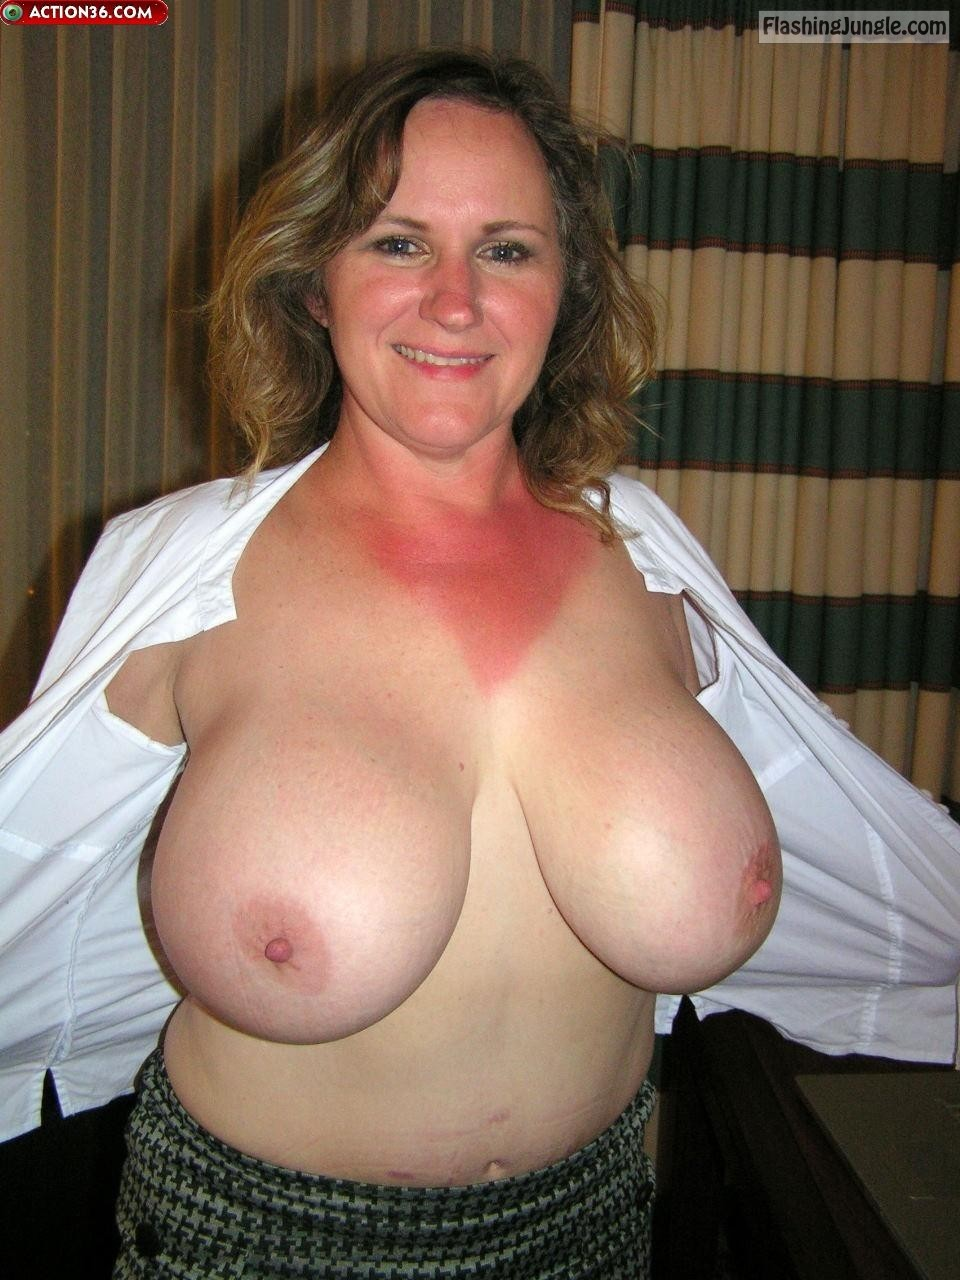 big tit flashing moving picture